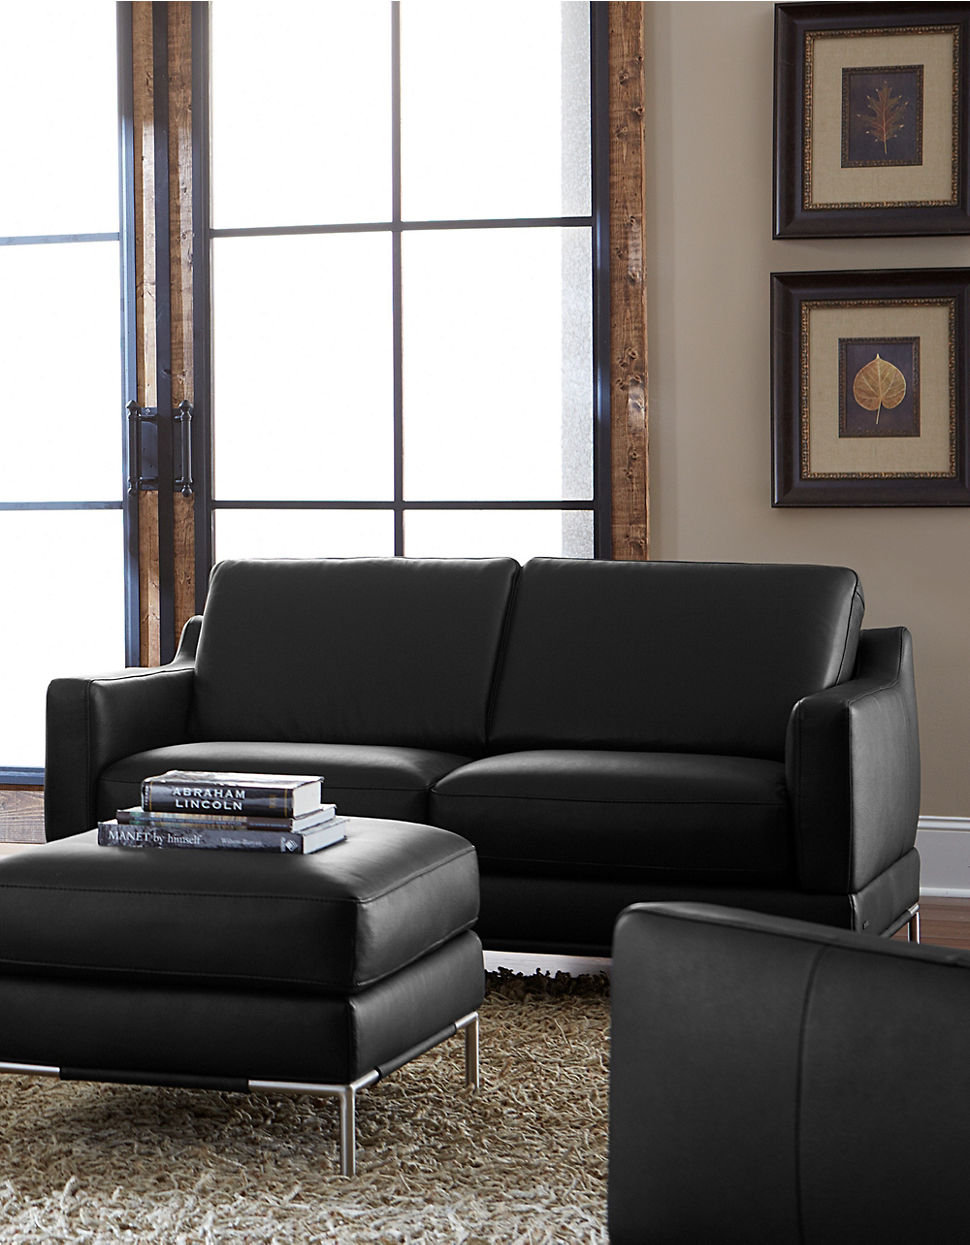 hudson bay natuzzi sofas. Black Bedroom Furniture Sets. Home Design Ideas